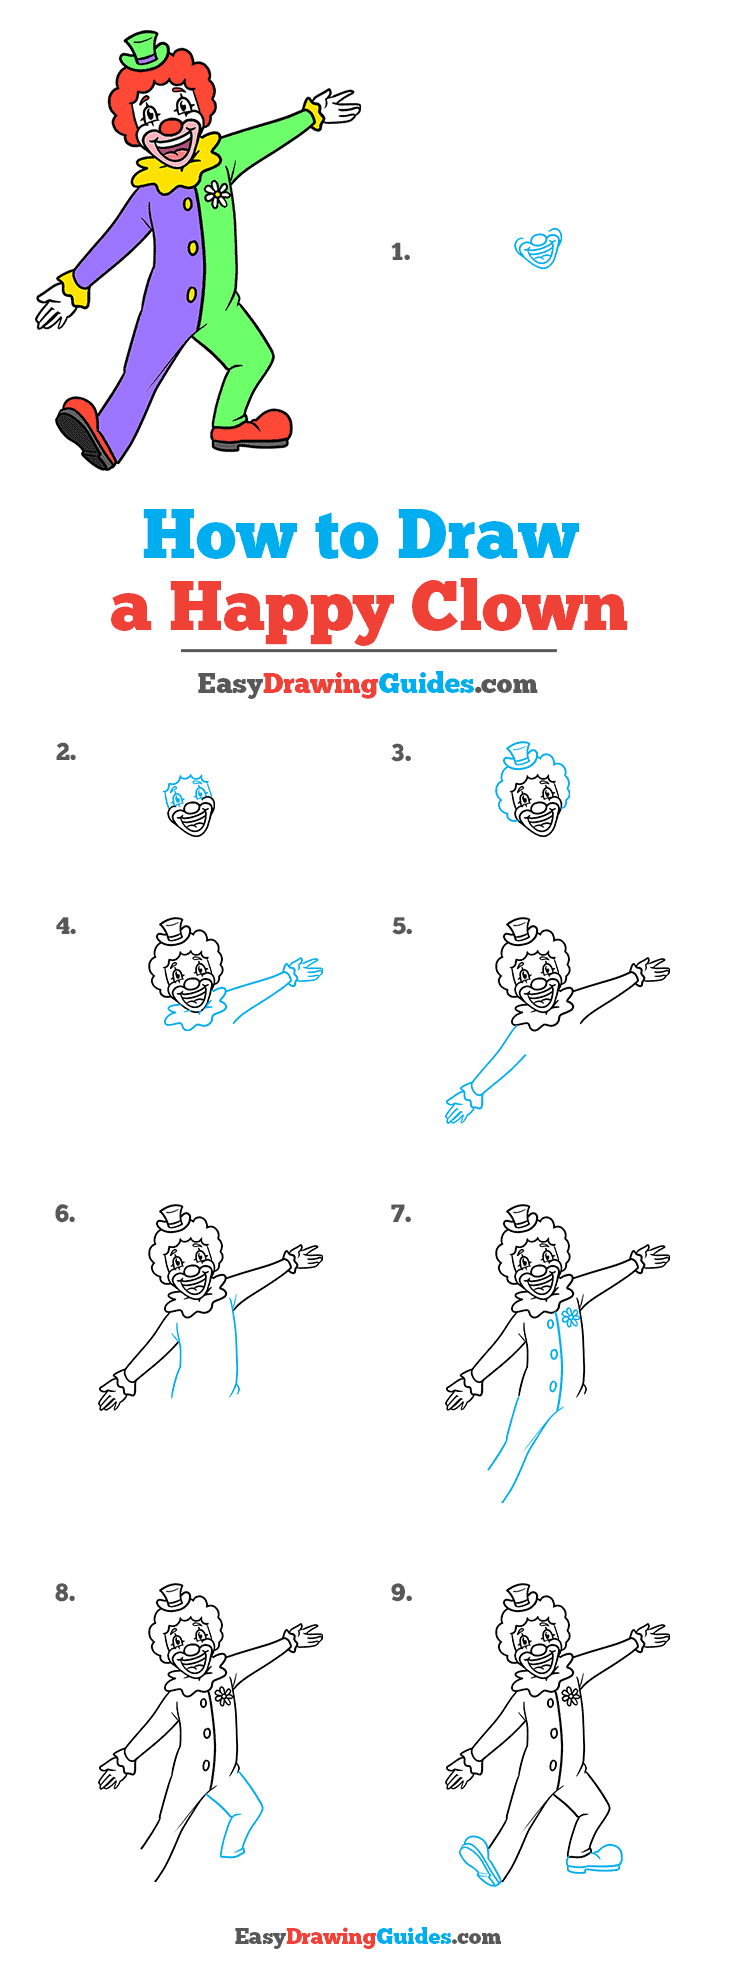 How to Draw a Happy Clown Step by Step Tutorial Image